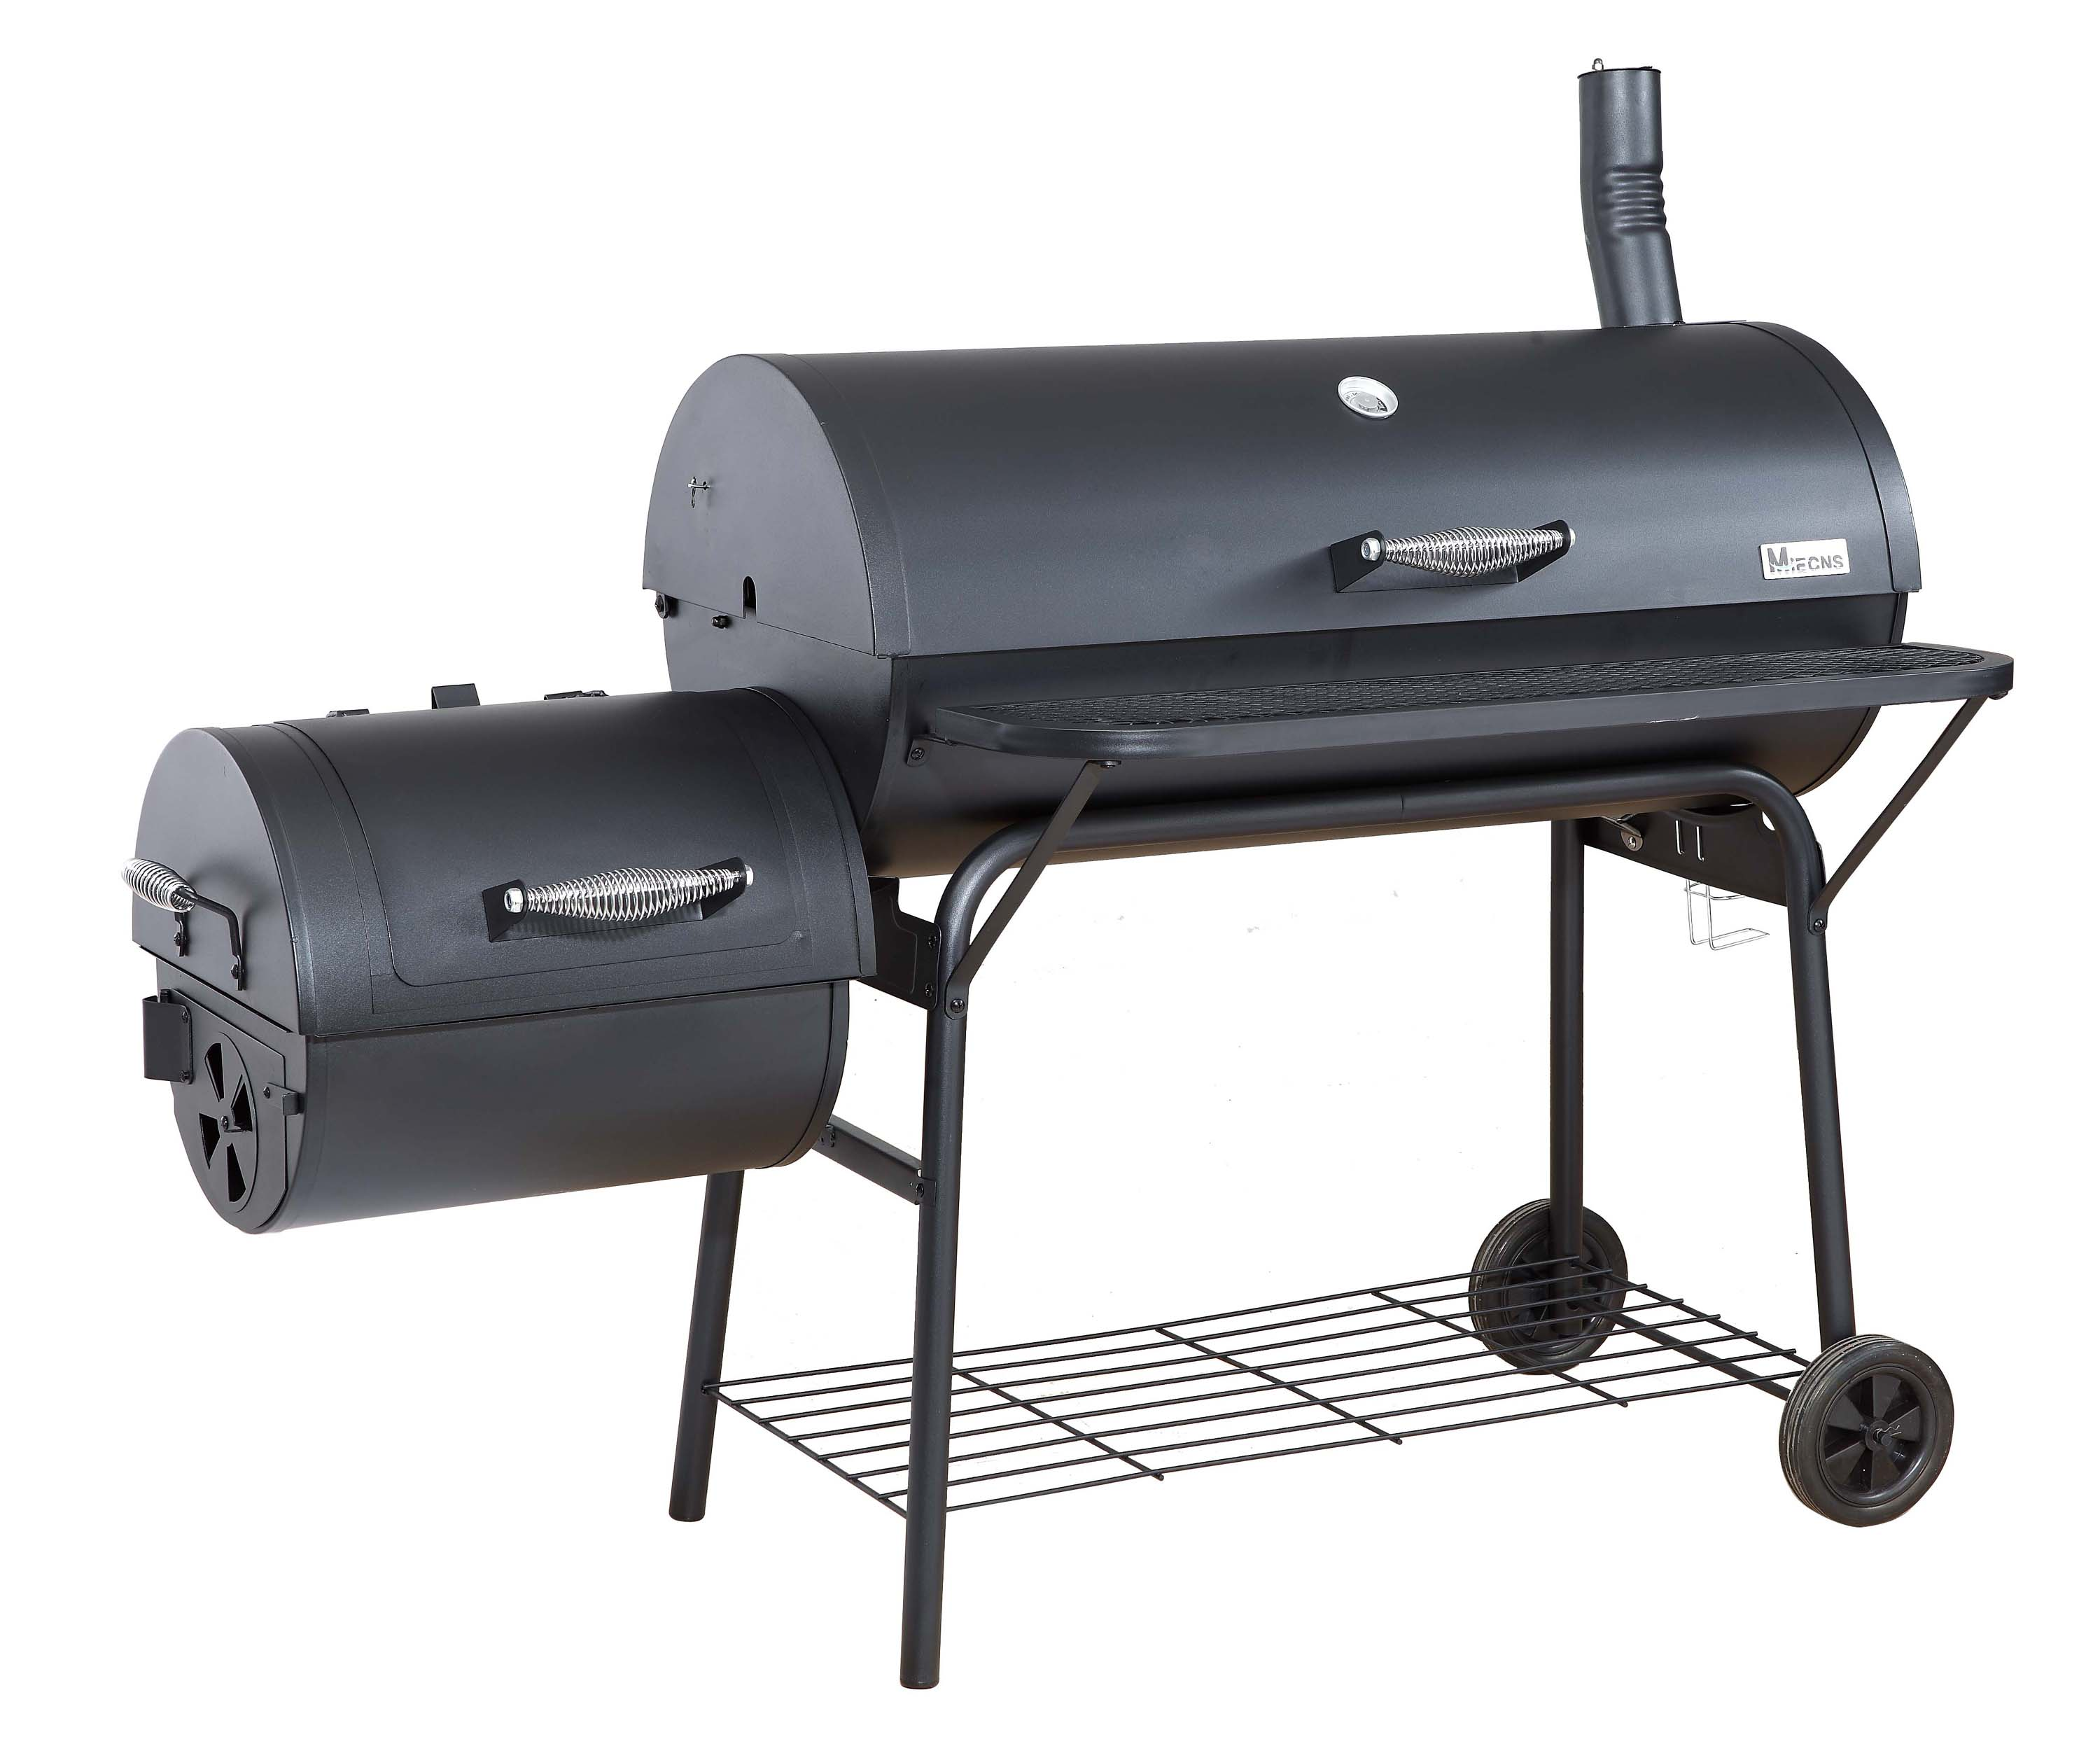 Gasgrill Tenneker Buy Promotional Spot Carbon Charcoal Grill Grill Outdoor Bbq Grill